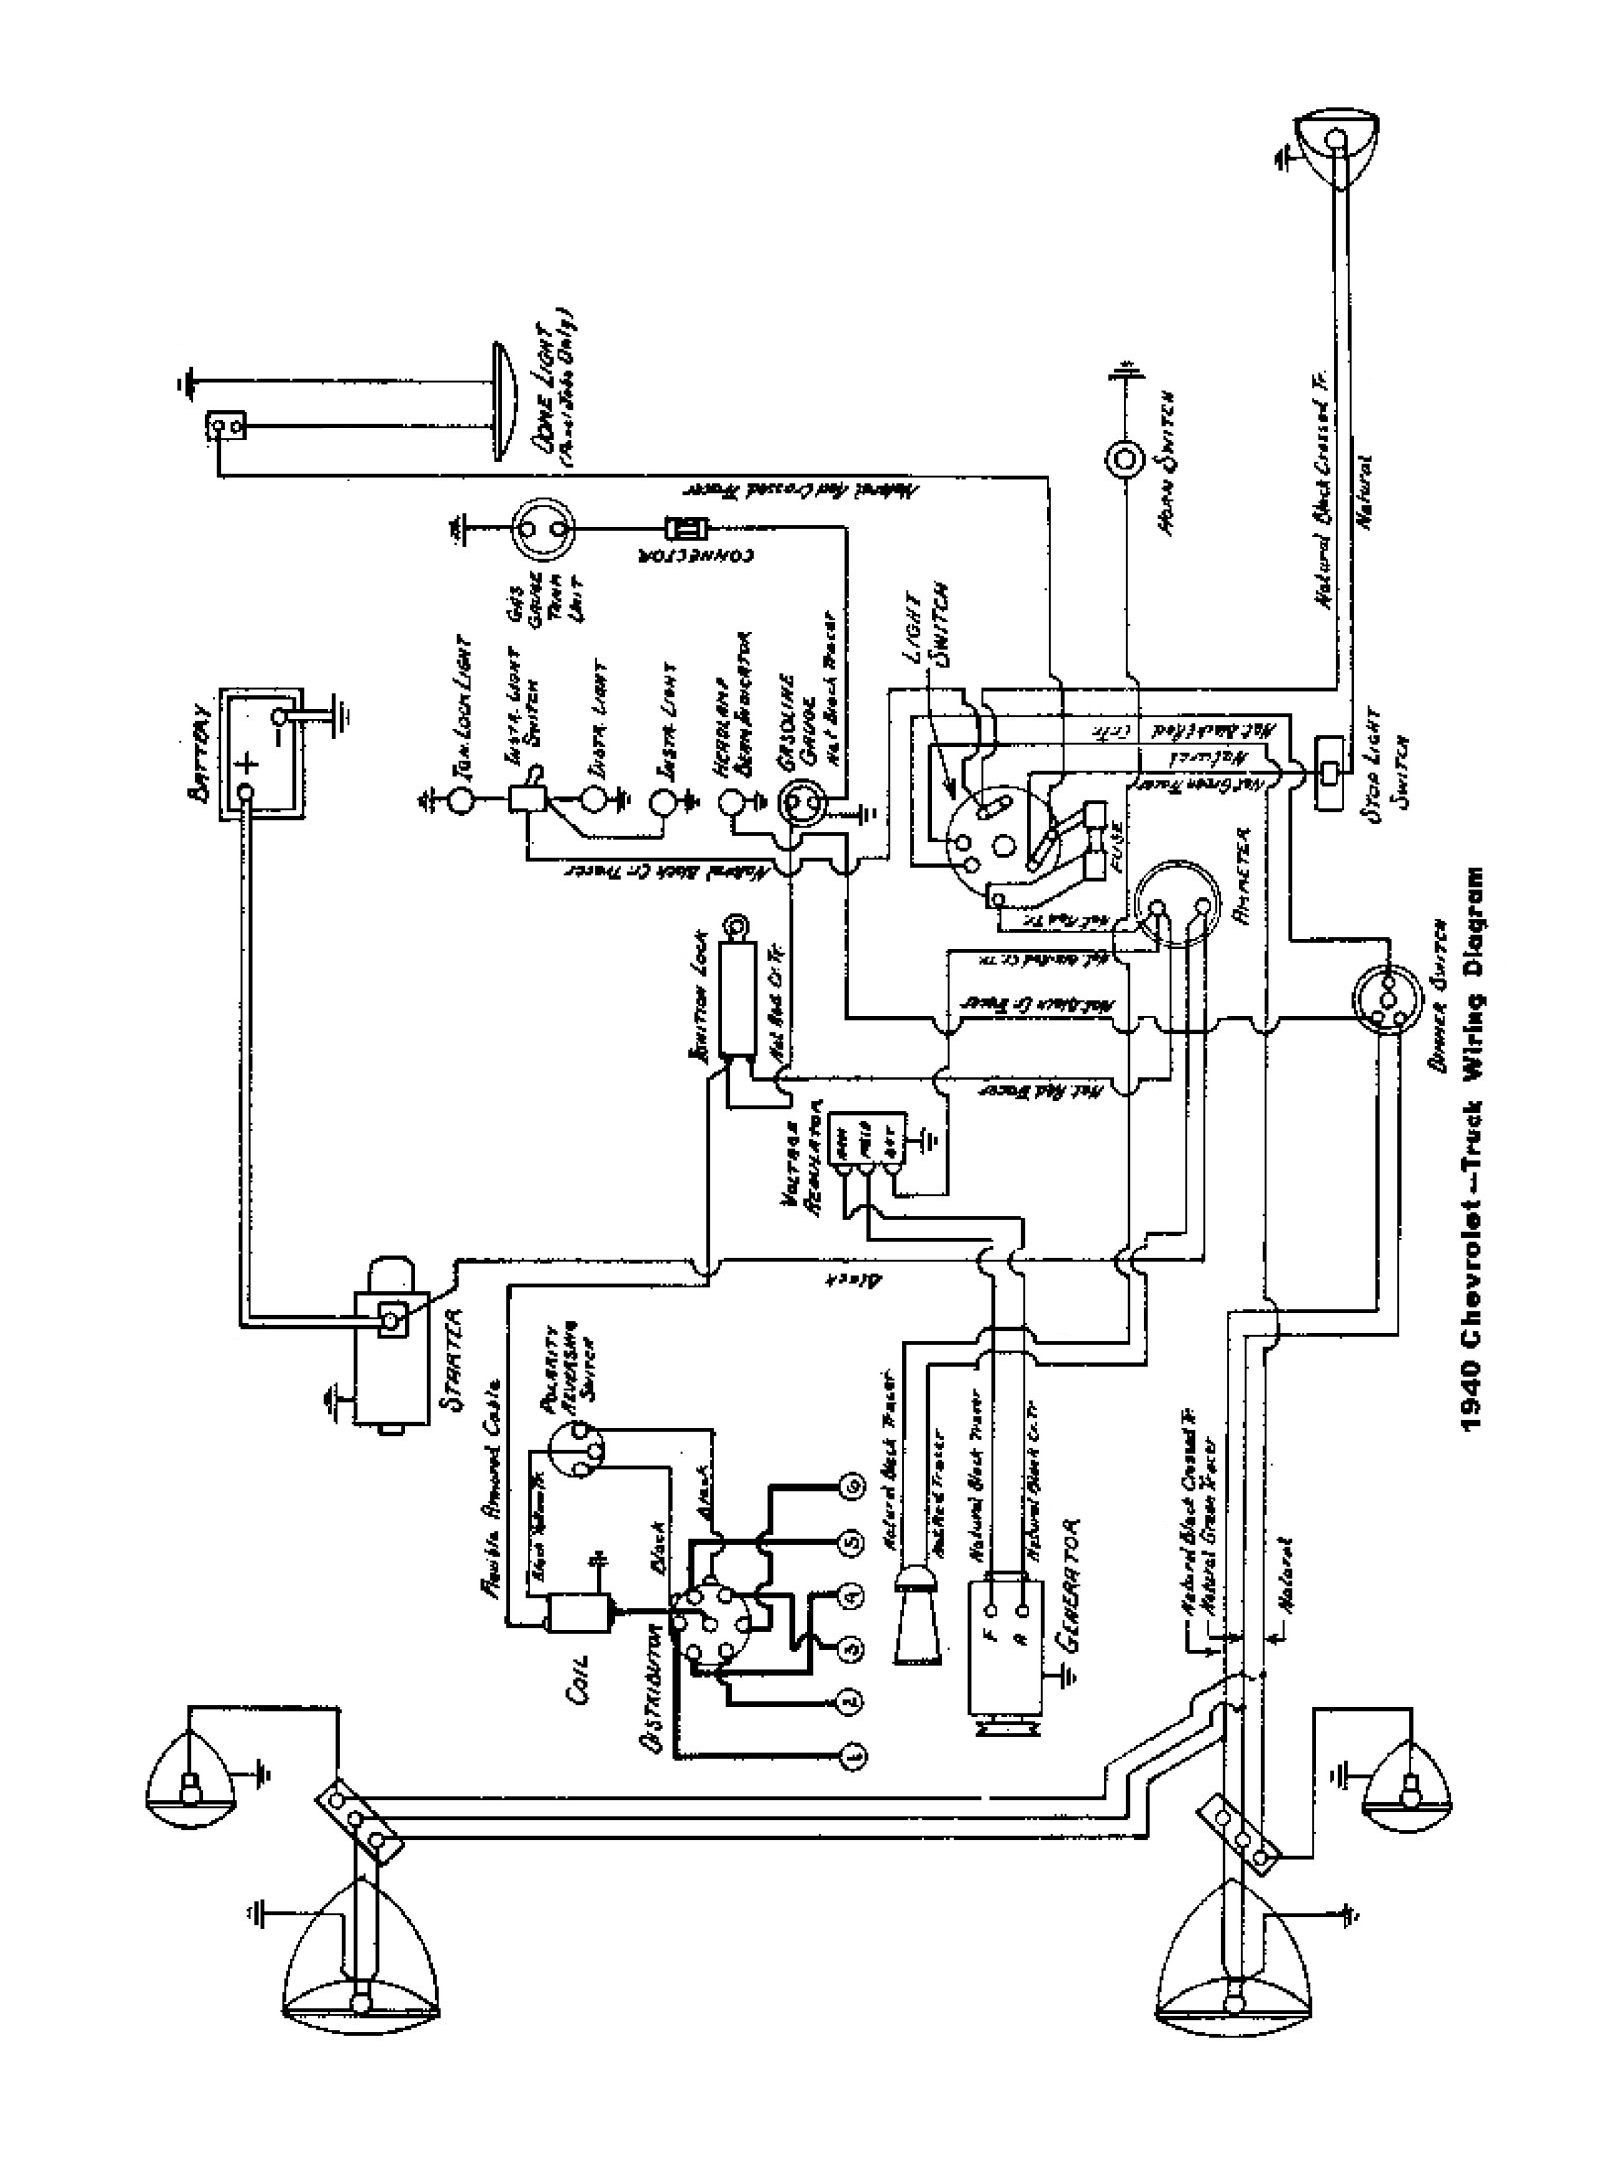 Gm Fuel Gauge Wiring Diagram